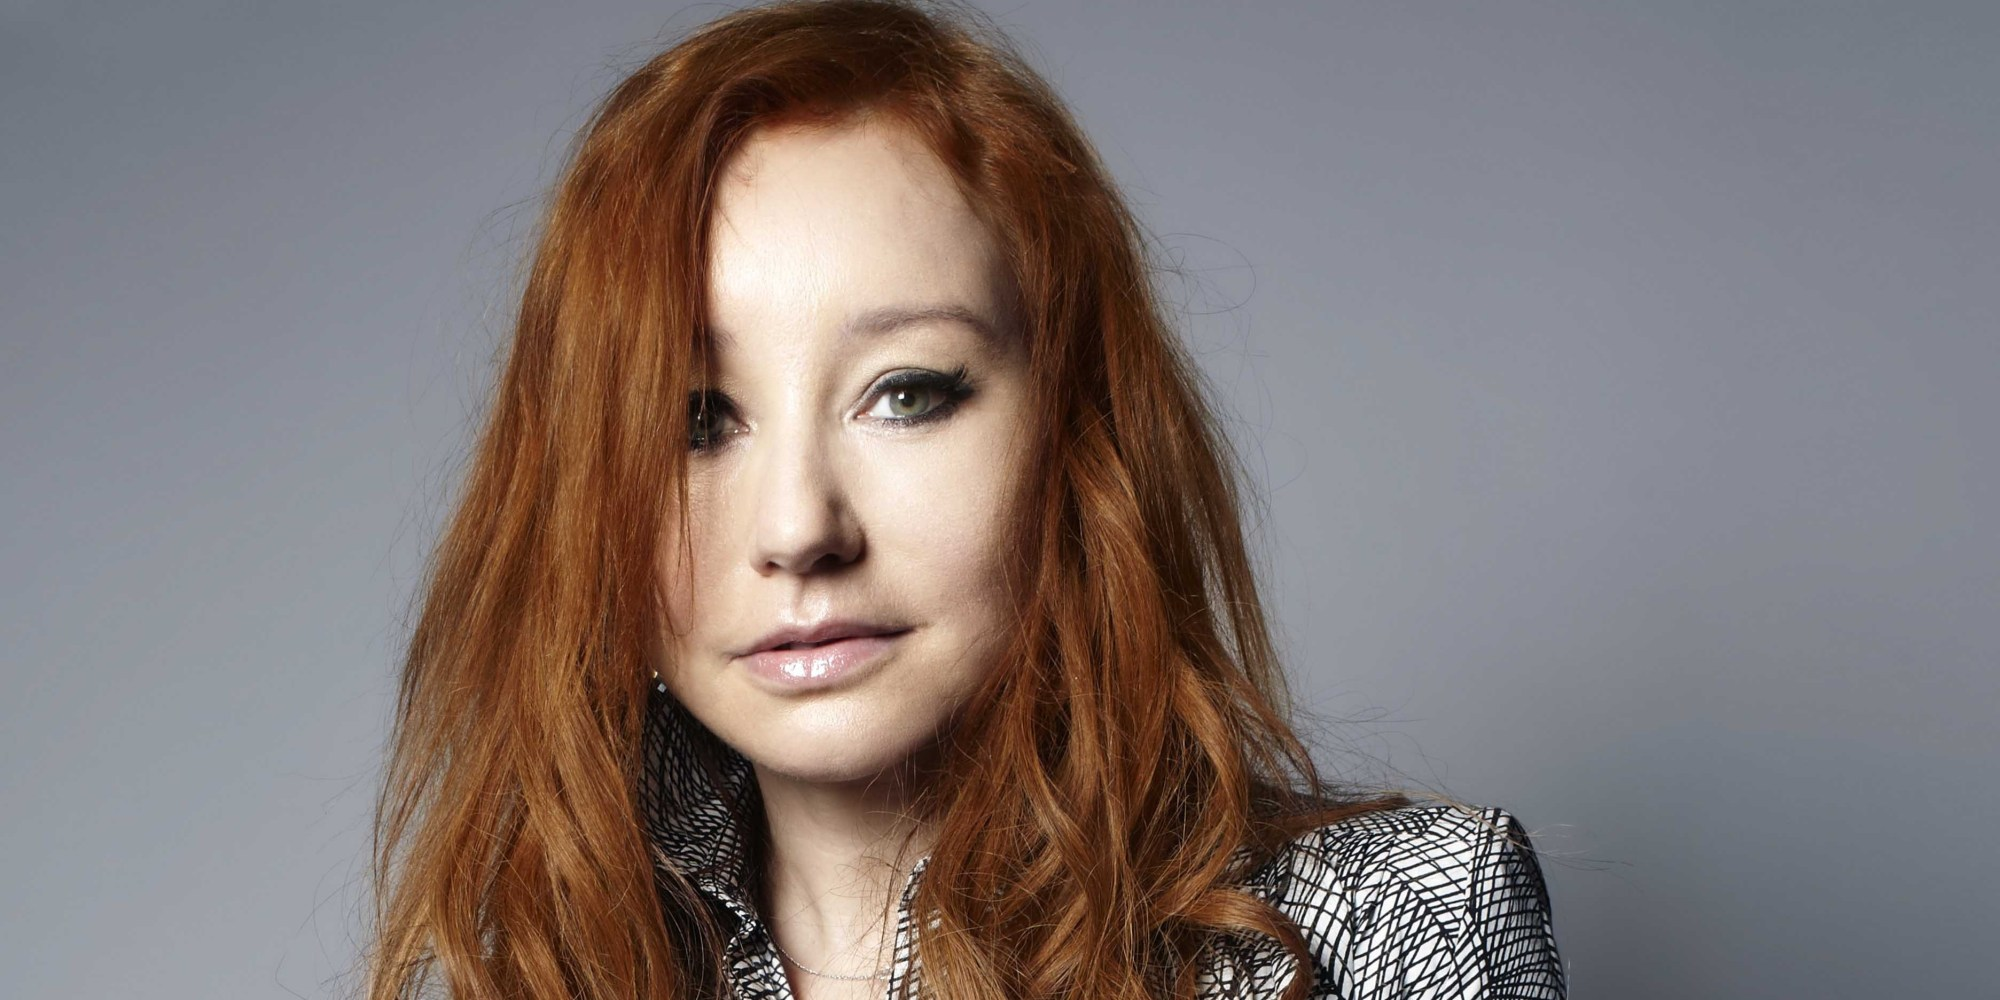 Tori Amos Goes Under The Covers With Miley Cyrus Madonna